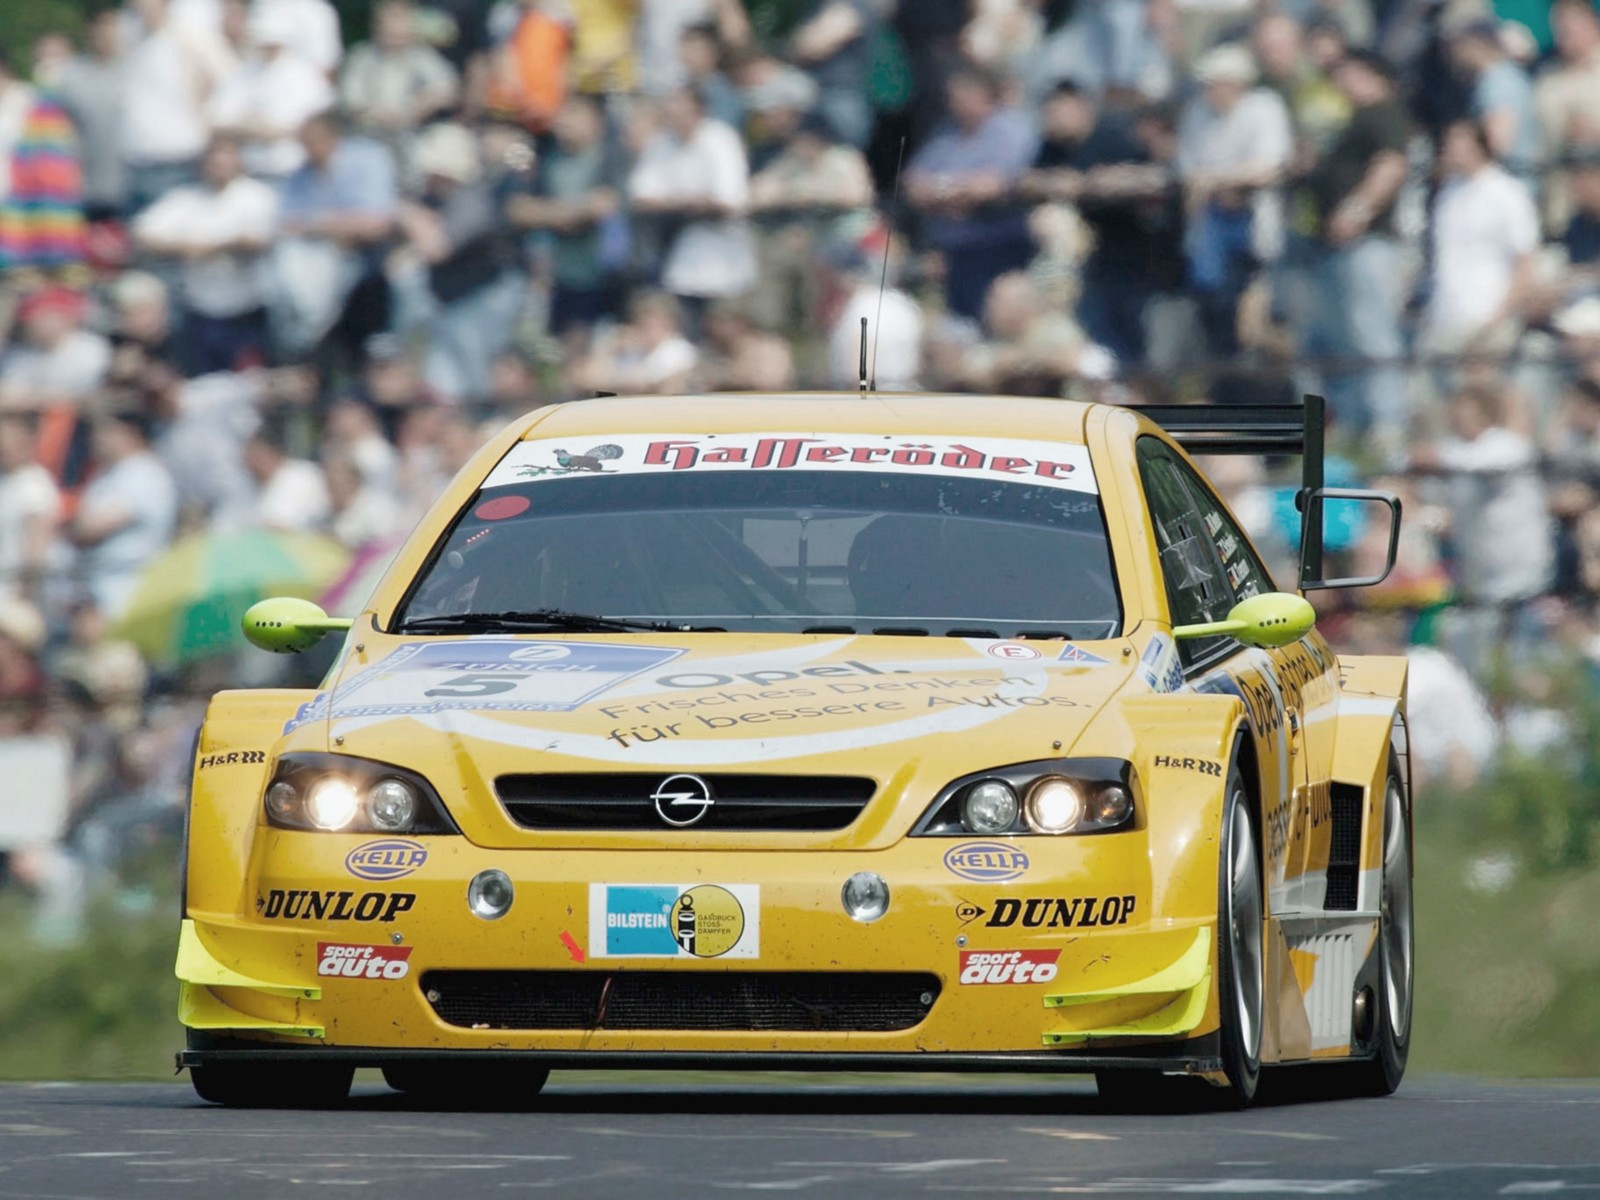 2000 Opel Astra V8 Coupe Dtm Race Racing V 8 G Wallpaper 1600x1200 129493 Wallpaperup